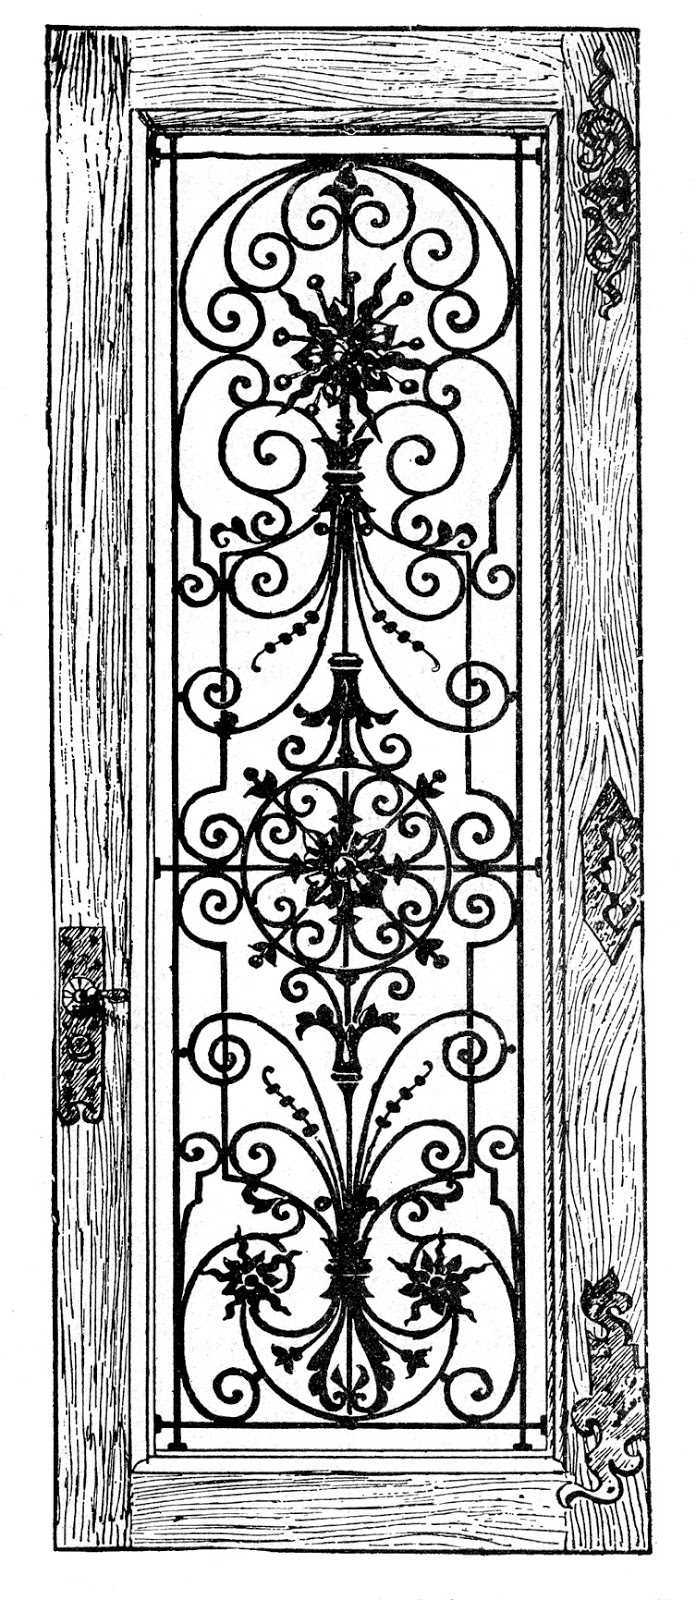 Free Ornate Door Cliparts, Download Free Clip Art, Free Clip.